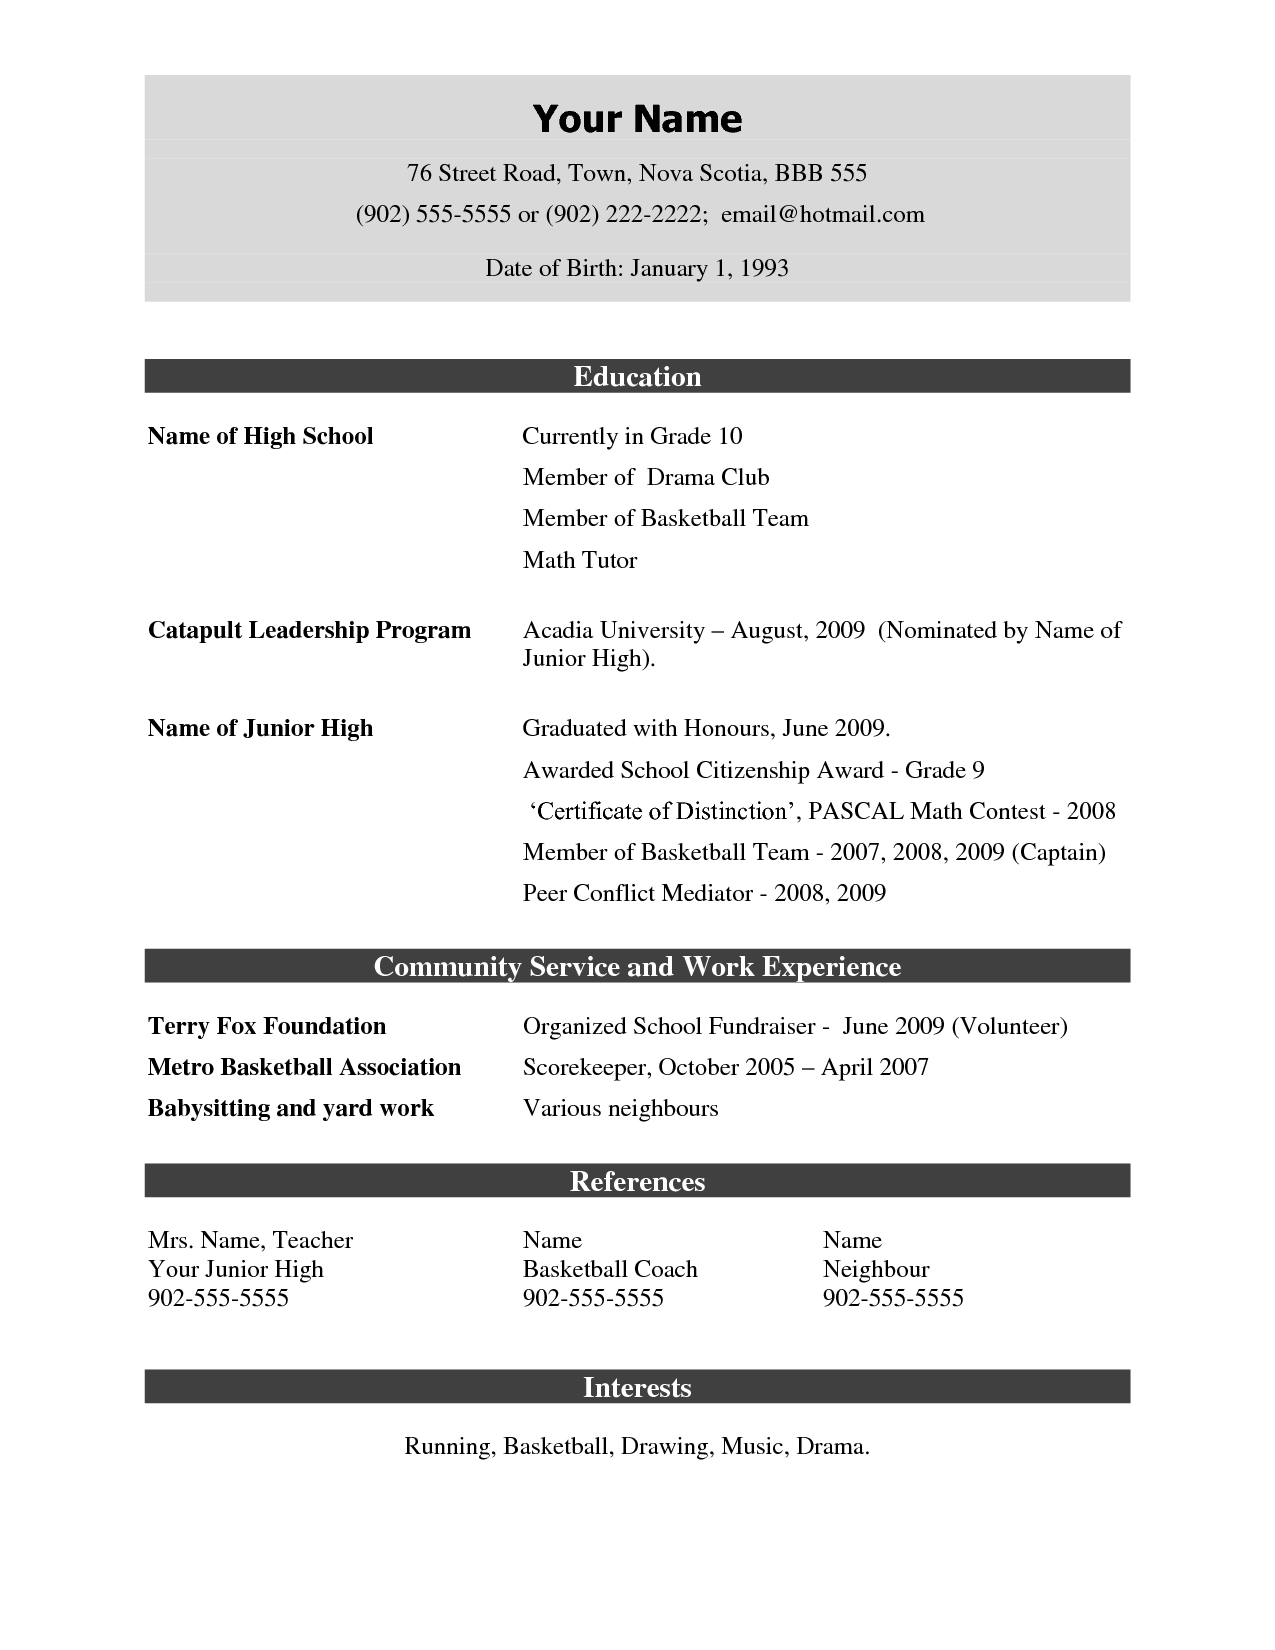 Sample Resume Download jmckell.Com